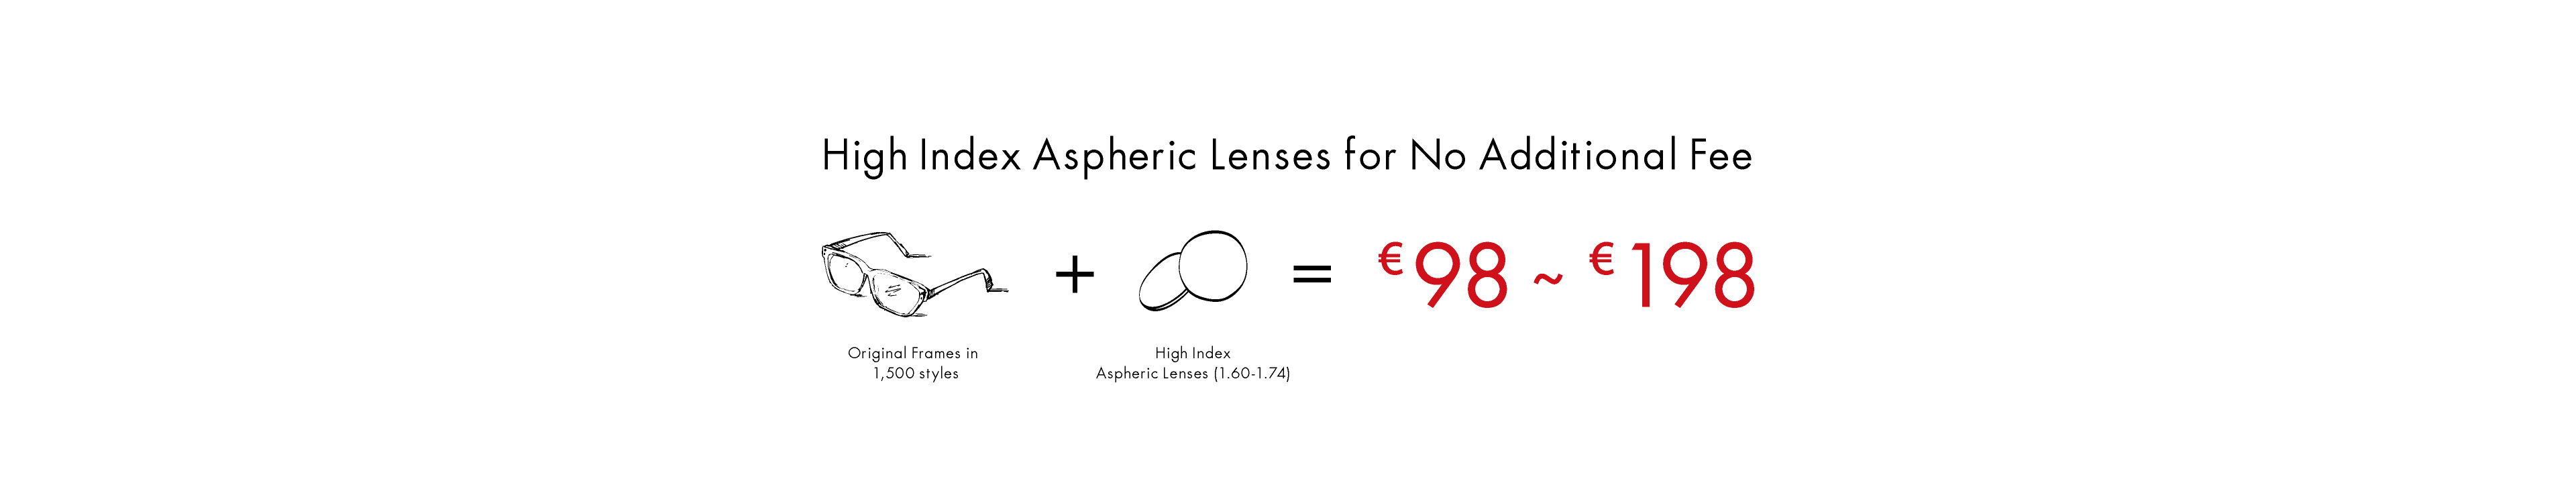 High Index Aspheric Lenses for No Additional Fee